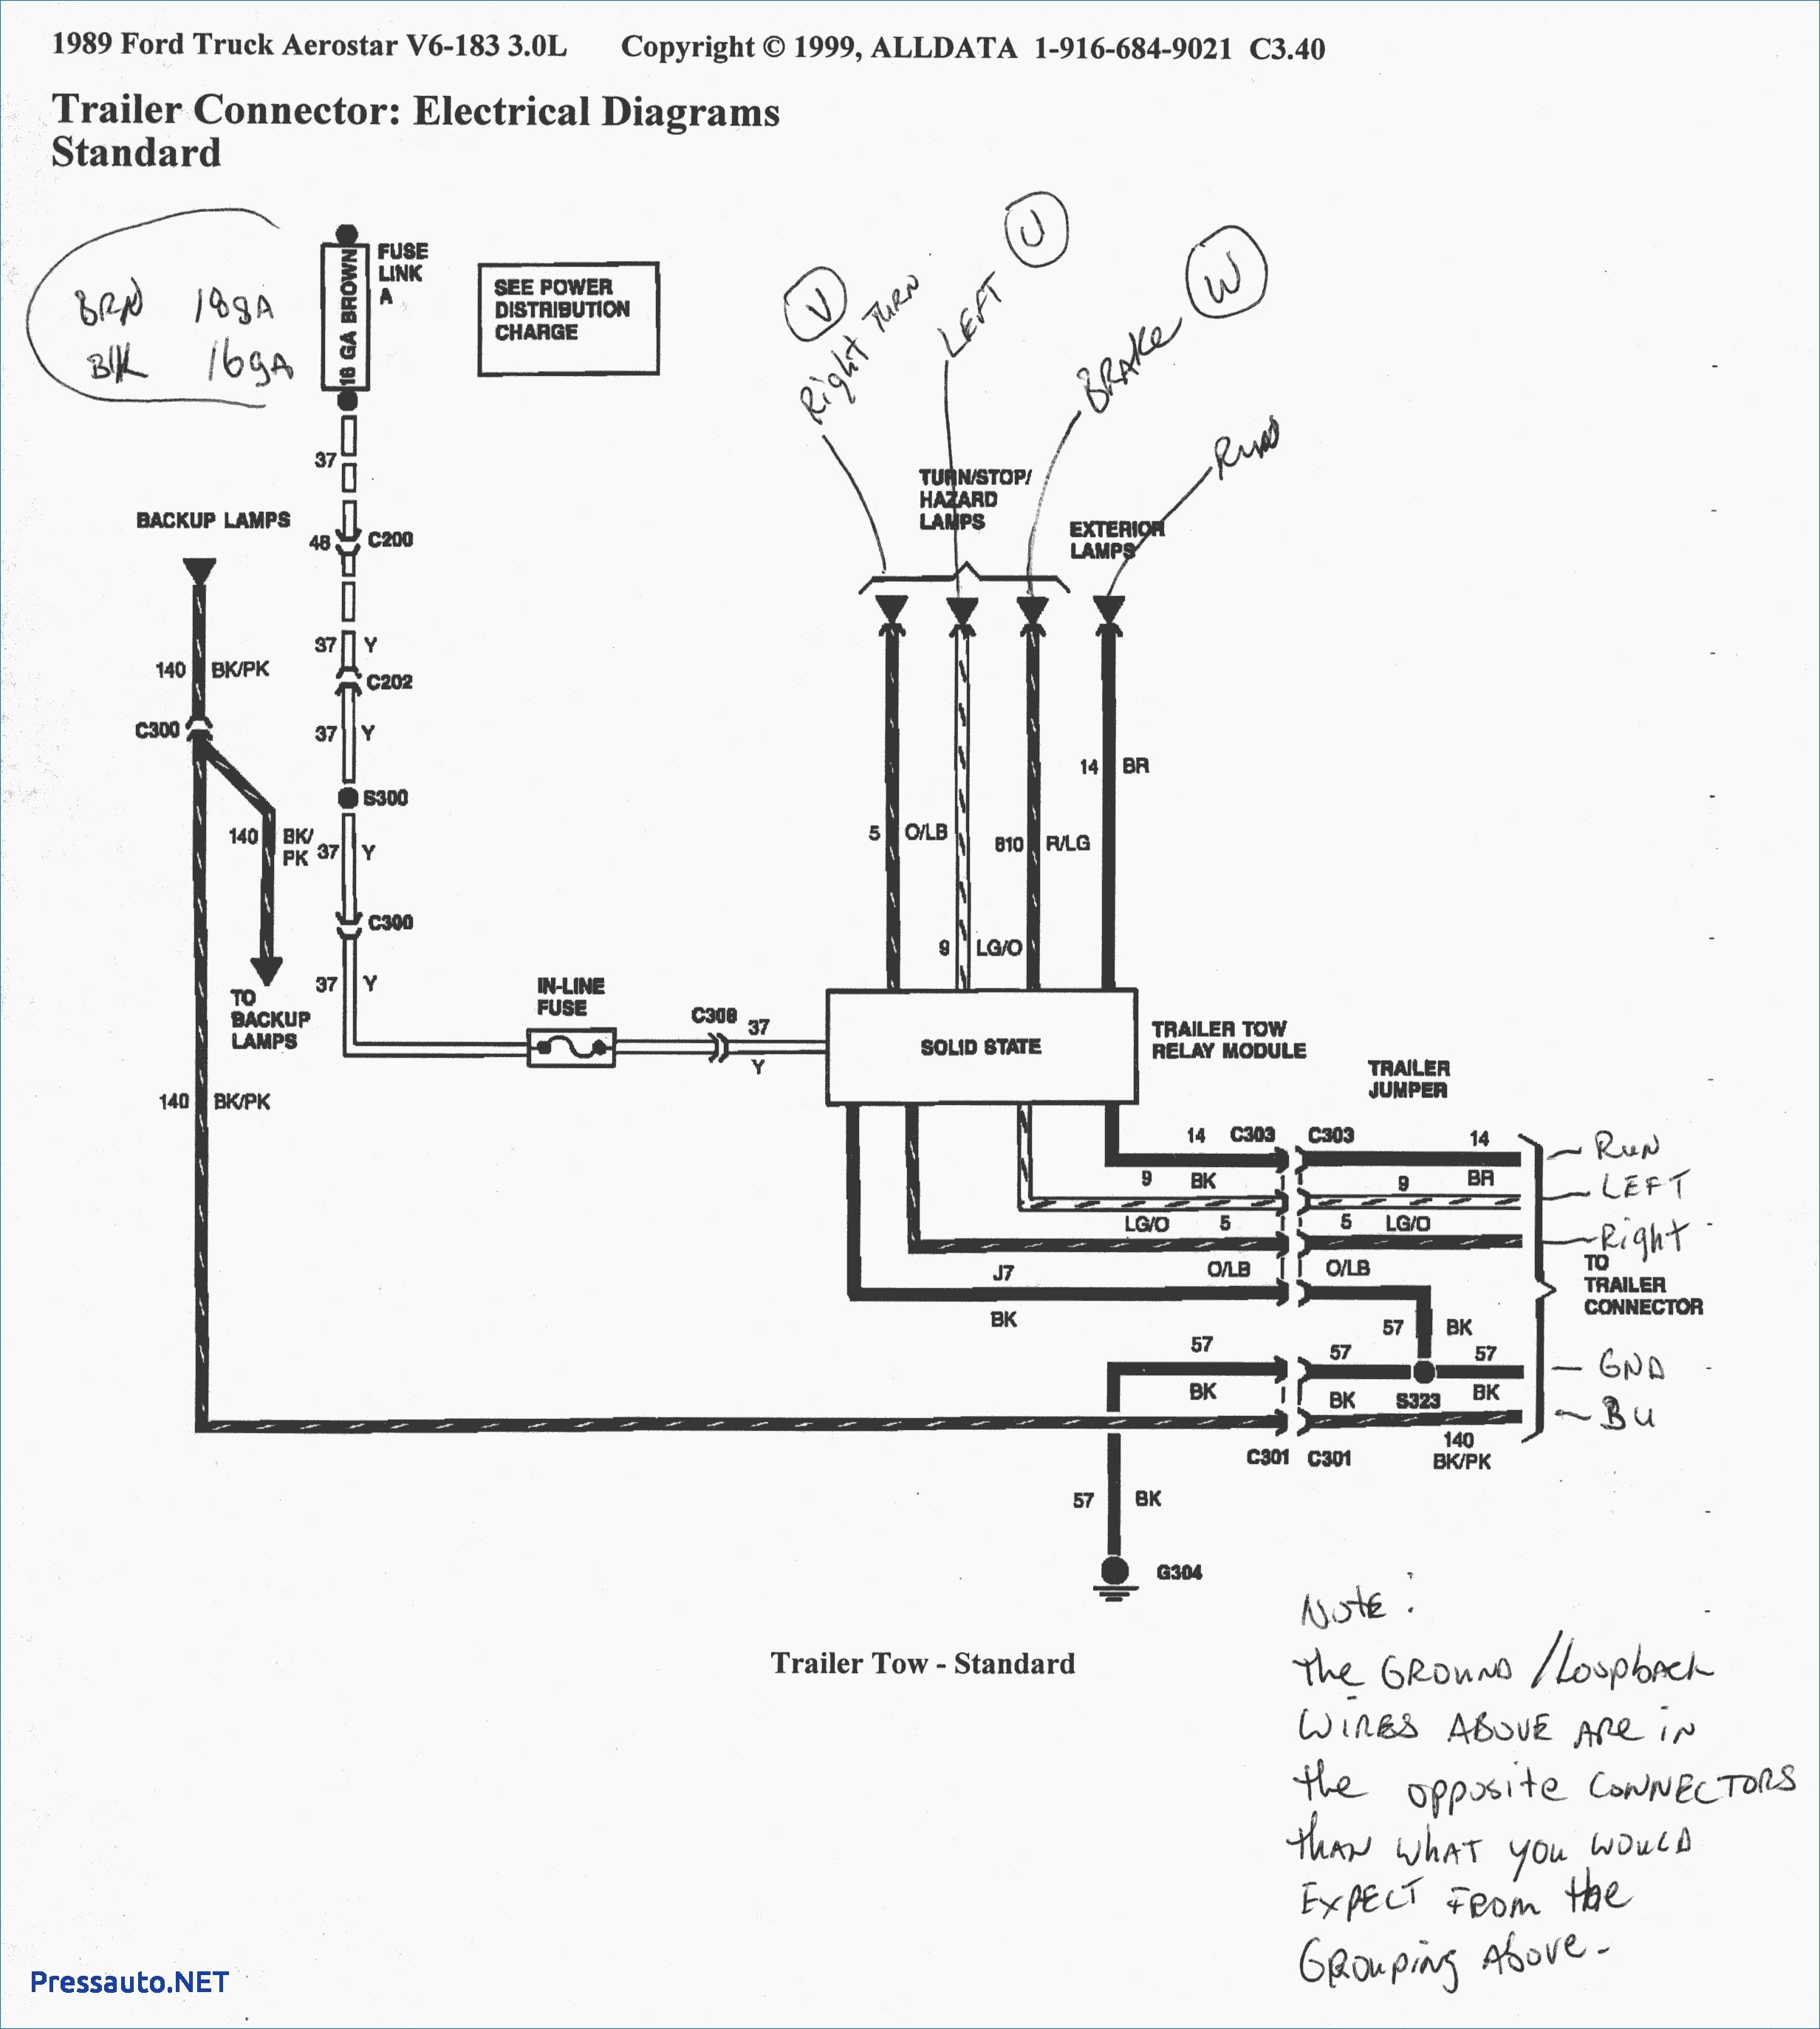 ford f150 trailer wiring harness diagram Download-Wiring Diagram Sheets Detail Name ford f150 trailer wiring harness diagram – Trailer Wiring Diagram 4-b